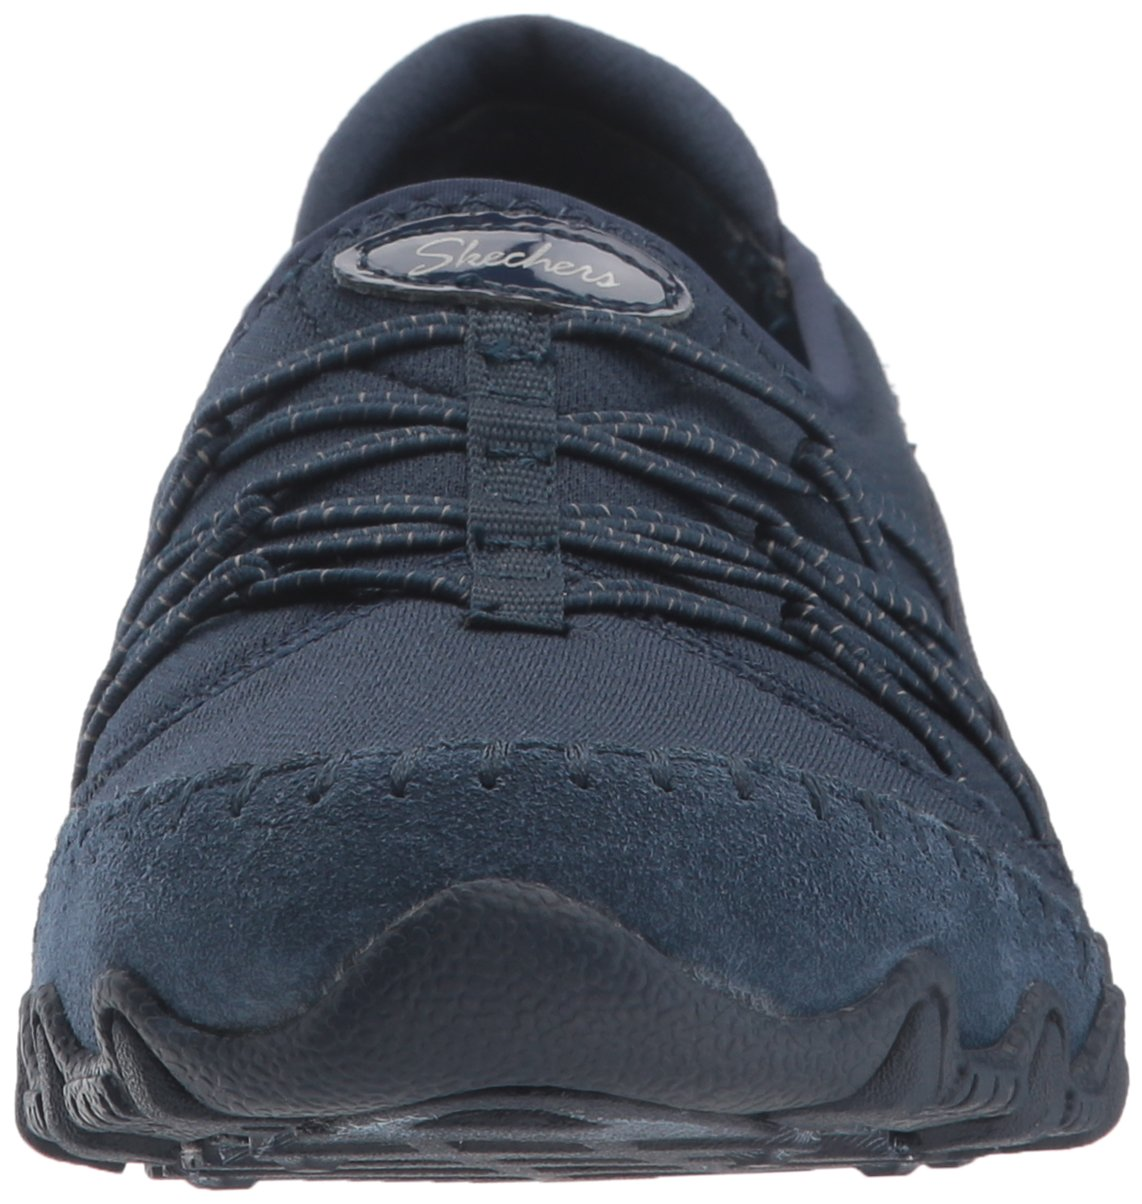 Skechers Women's Bikers Digits-Double Bungee Closure 9 Slip-on-Relaxed Fit Sneaker B079K4FCRC 9 Closure B(M) US|Navy f784f0